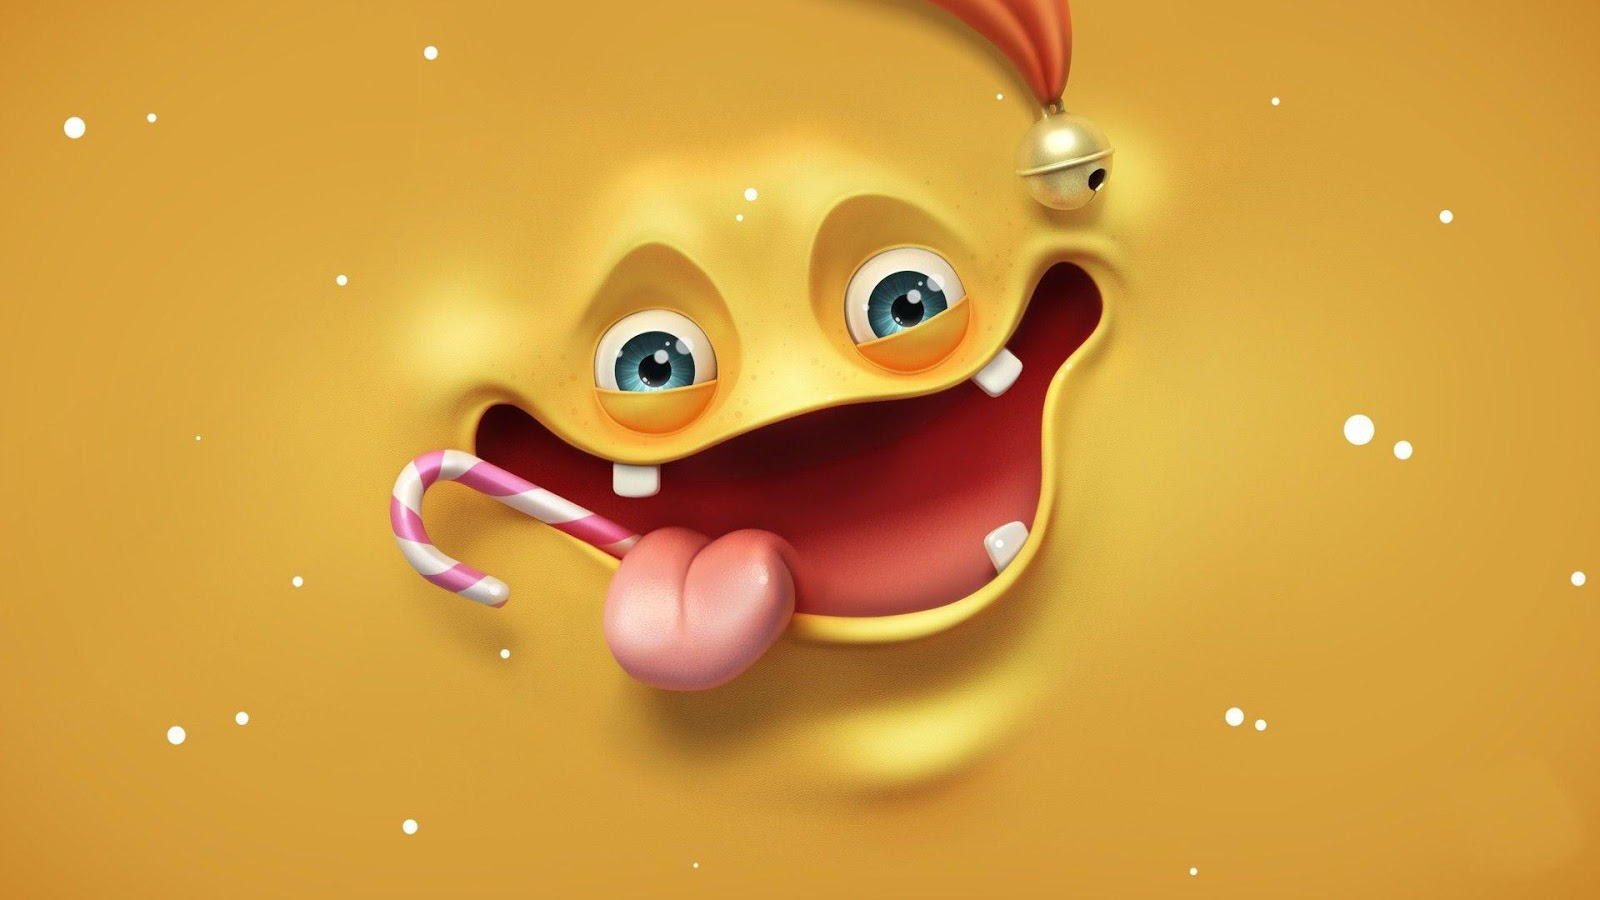 Funny face Desktop HD Wallpapers